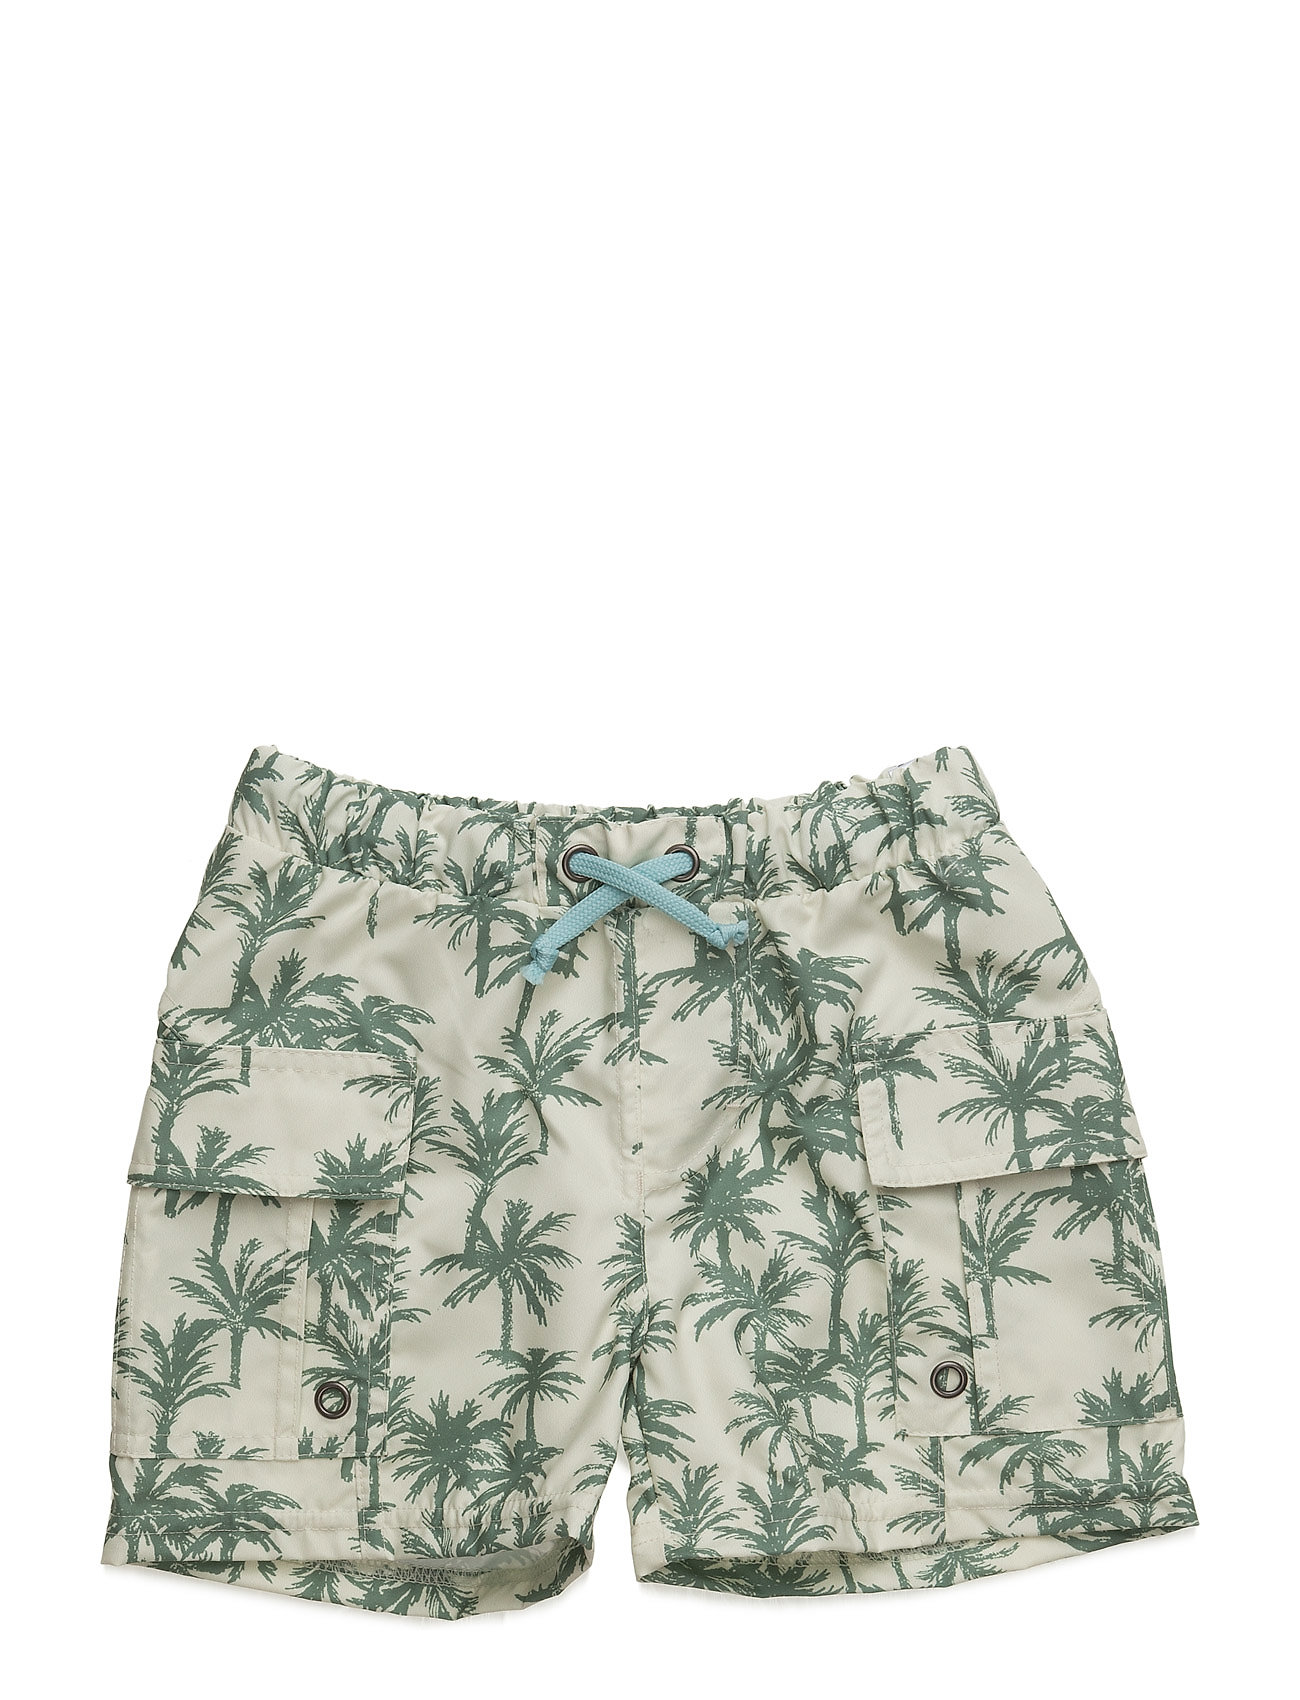 Mini A Ture Mateo Surfshort - YELLOW PEAR SORBET